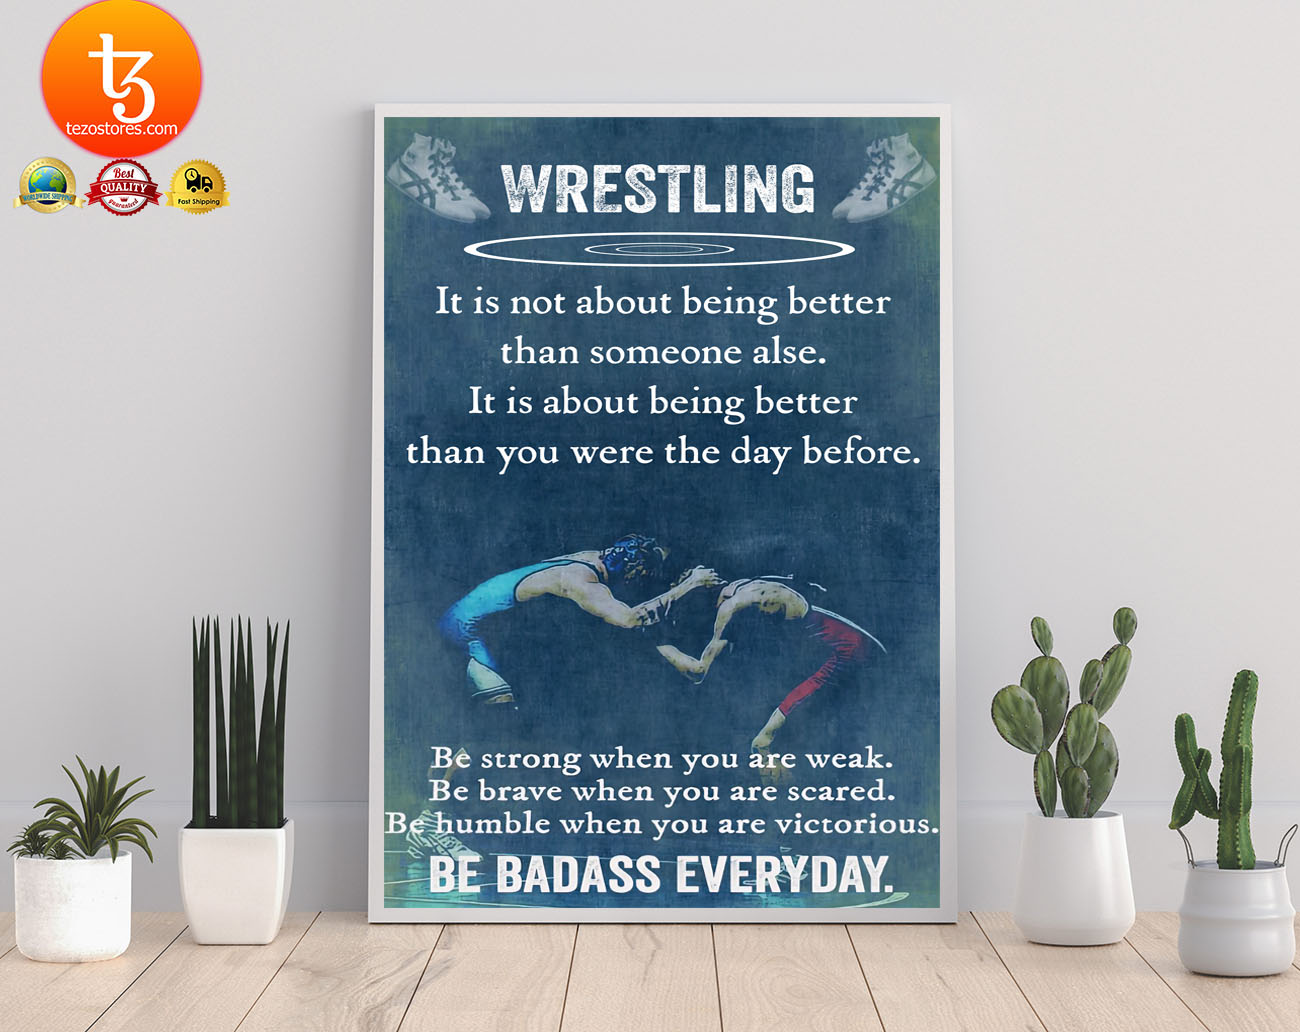 Wrestling it is not about being better than someine else poster 21